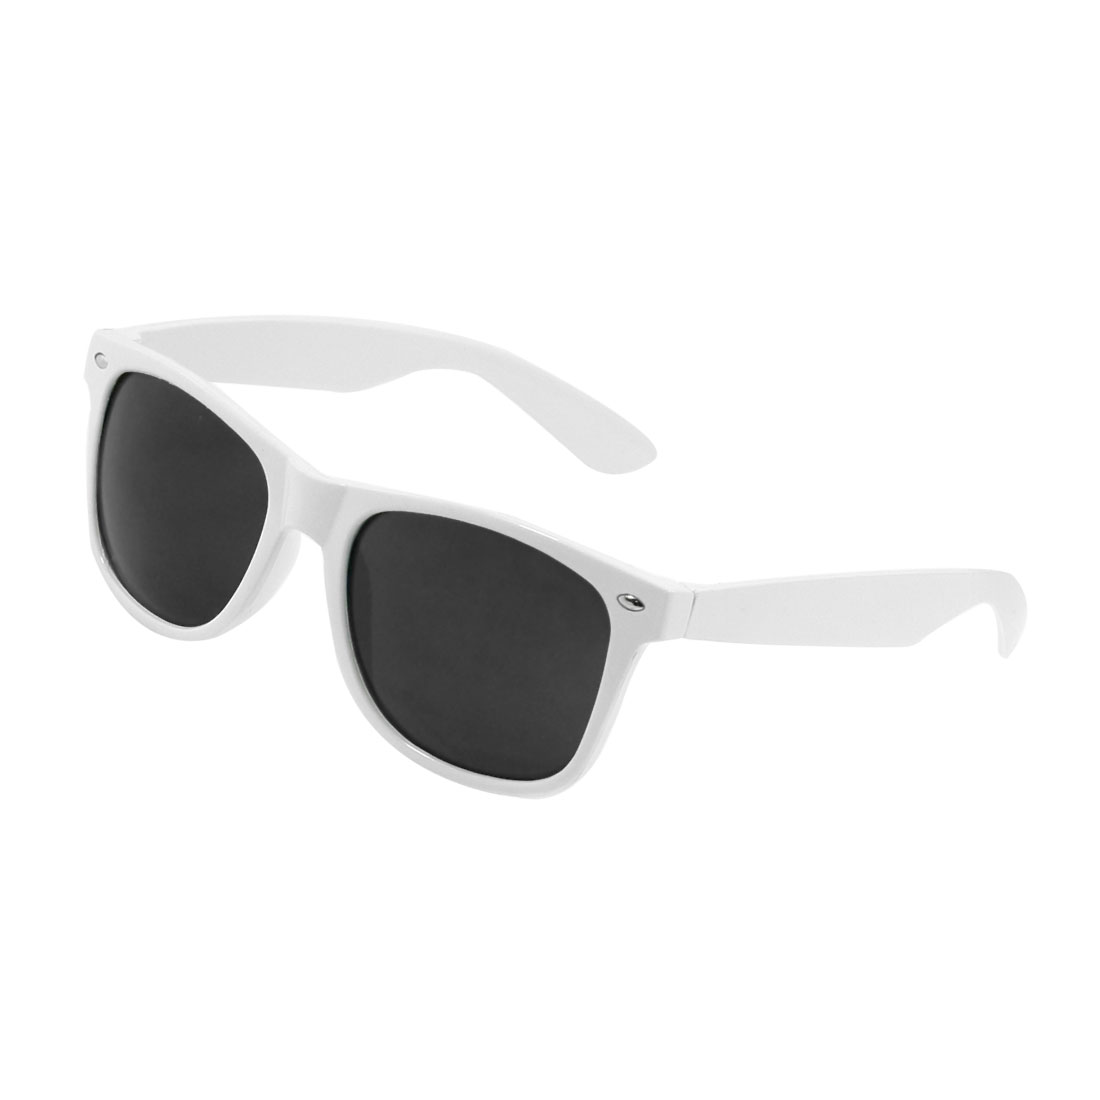 White Single Bridge Full Rim Gray Lens Plastic Eyewear Sunglasses for Women